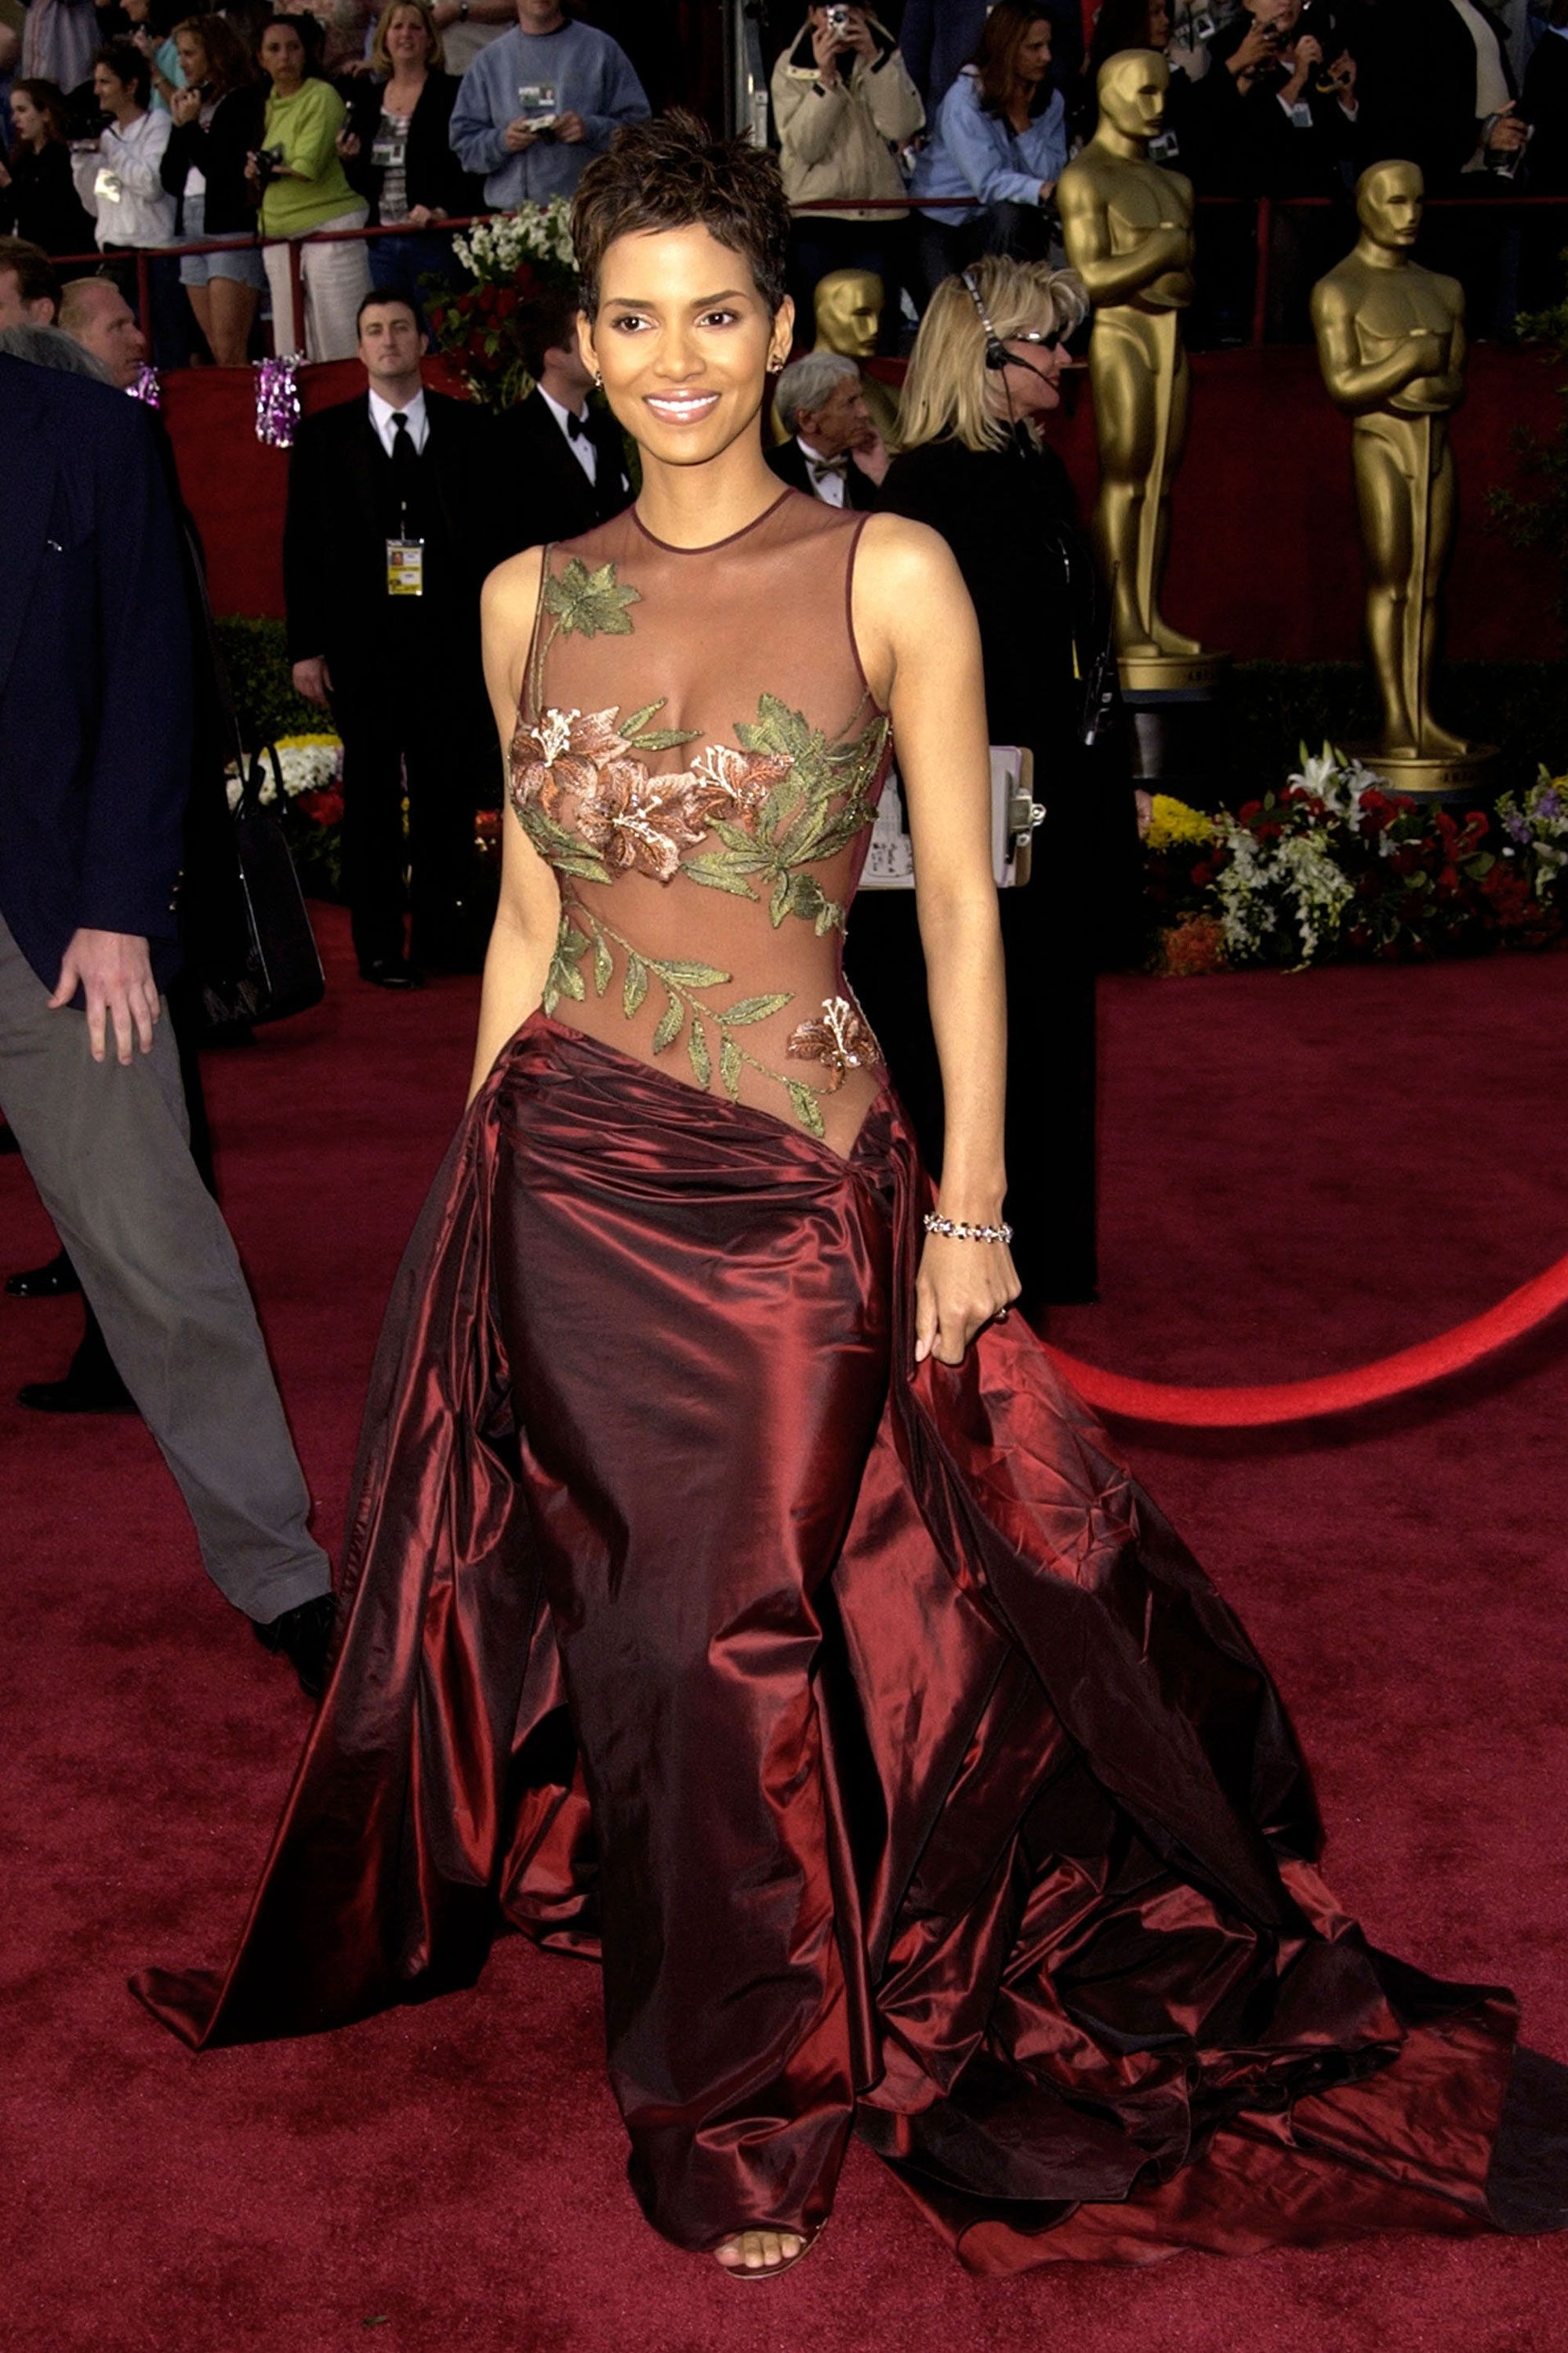 4e0c1a94c758 53 of the Most Iconic Oscar Gowns of All Time